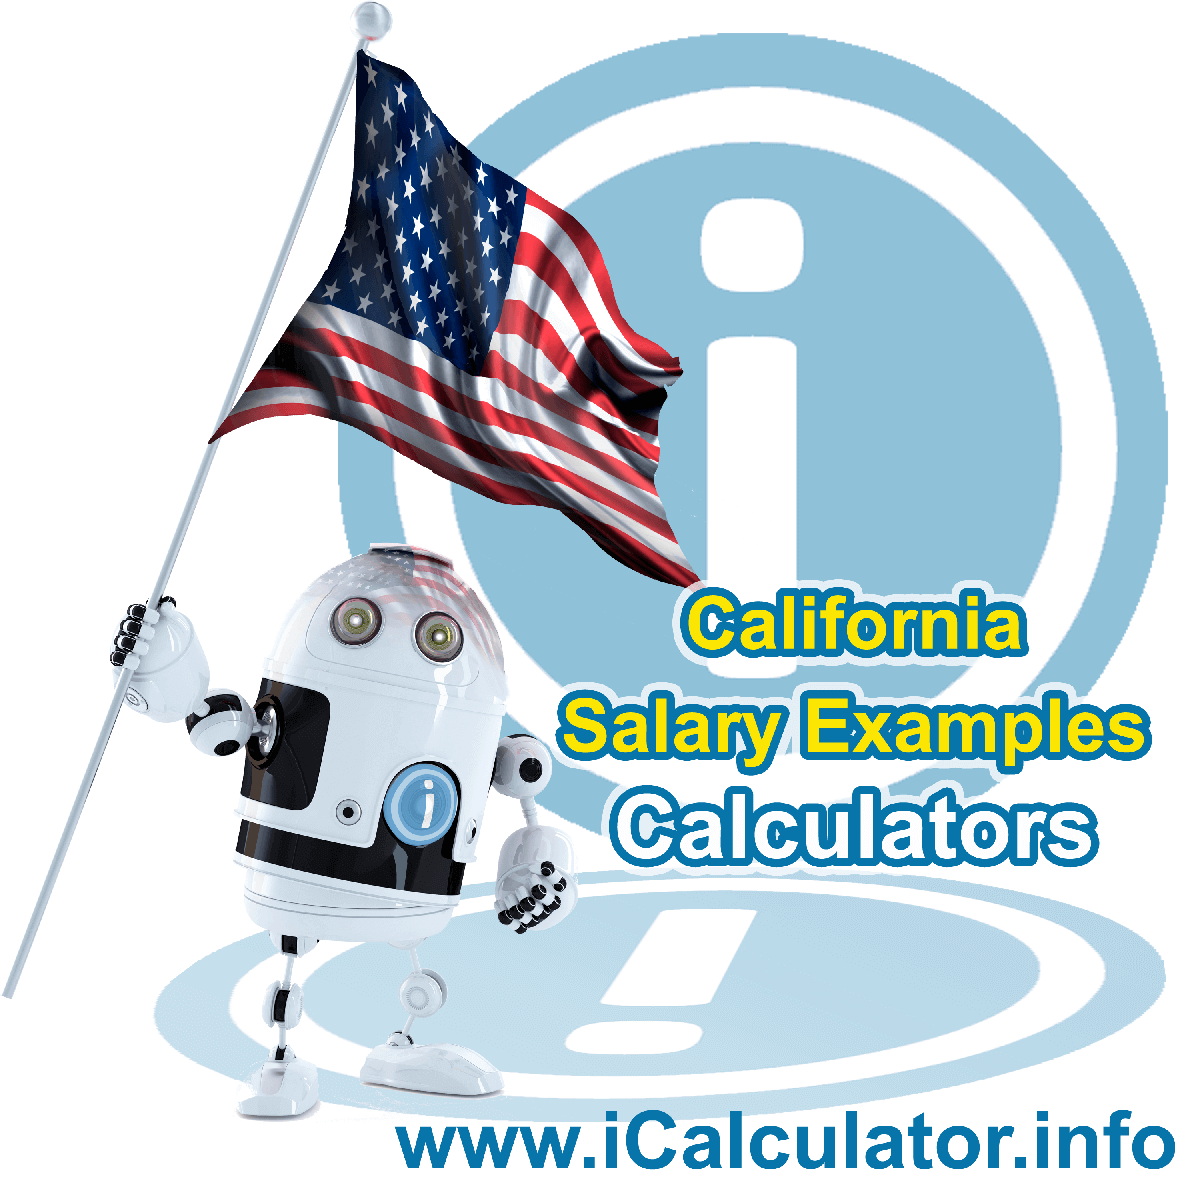 California Salary Example for $95,000.00 in 2020 | iCalculator | $95,000.00 salary example for employee and employer paying California State tincome taxes. Detailed salary after tax calculation including California State Tax, Federal State Tax, Medicare Deductions, Social Security, Capital Gains and other income tax and salary deductions complete with supporting California state tax tables